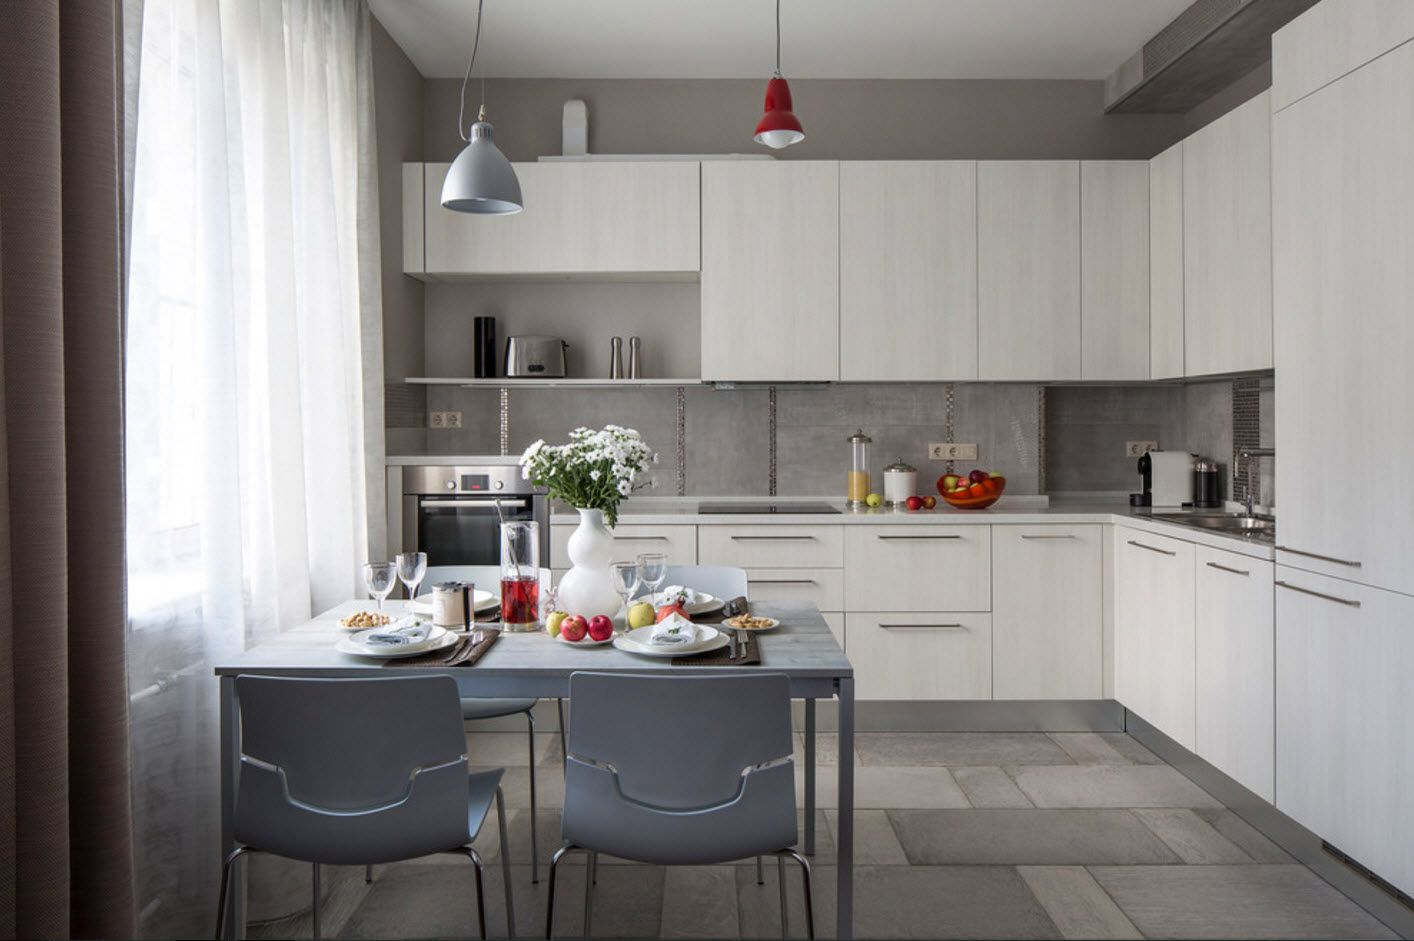 L-shaped kitchen layout with dining group for four persons with plastic gray chairs